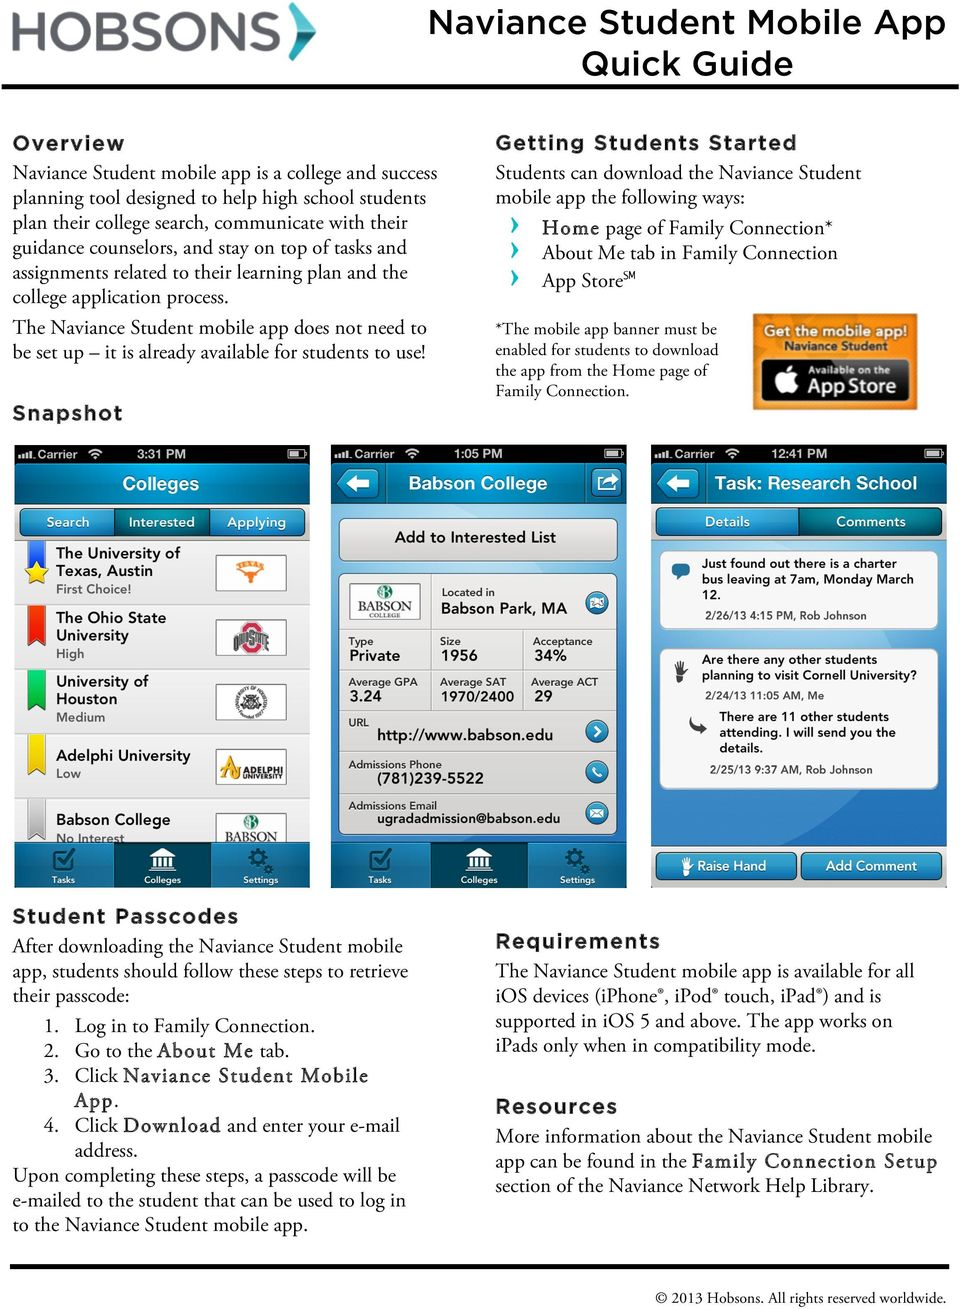 The Naviance Student mobile app does not need to be set up it is already available for students to use!